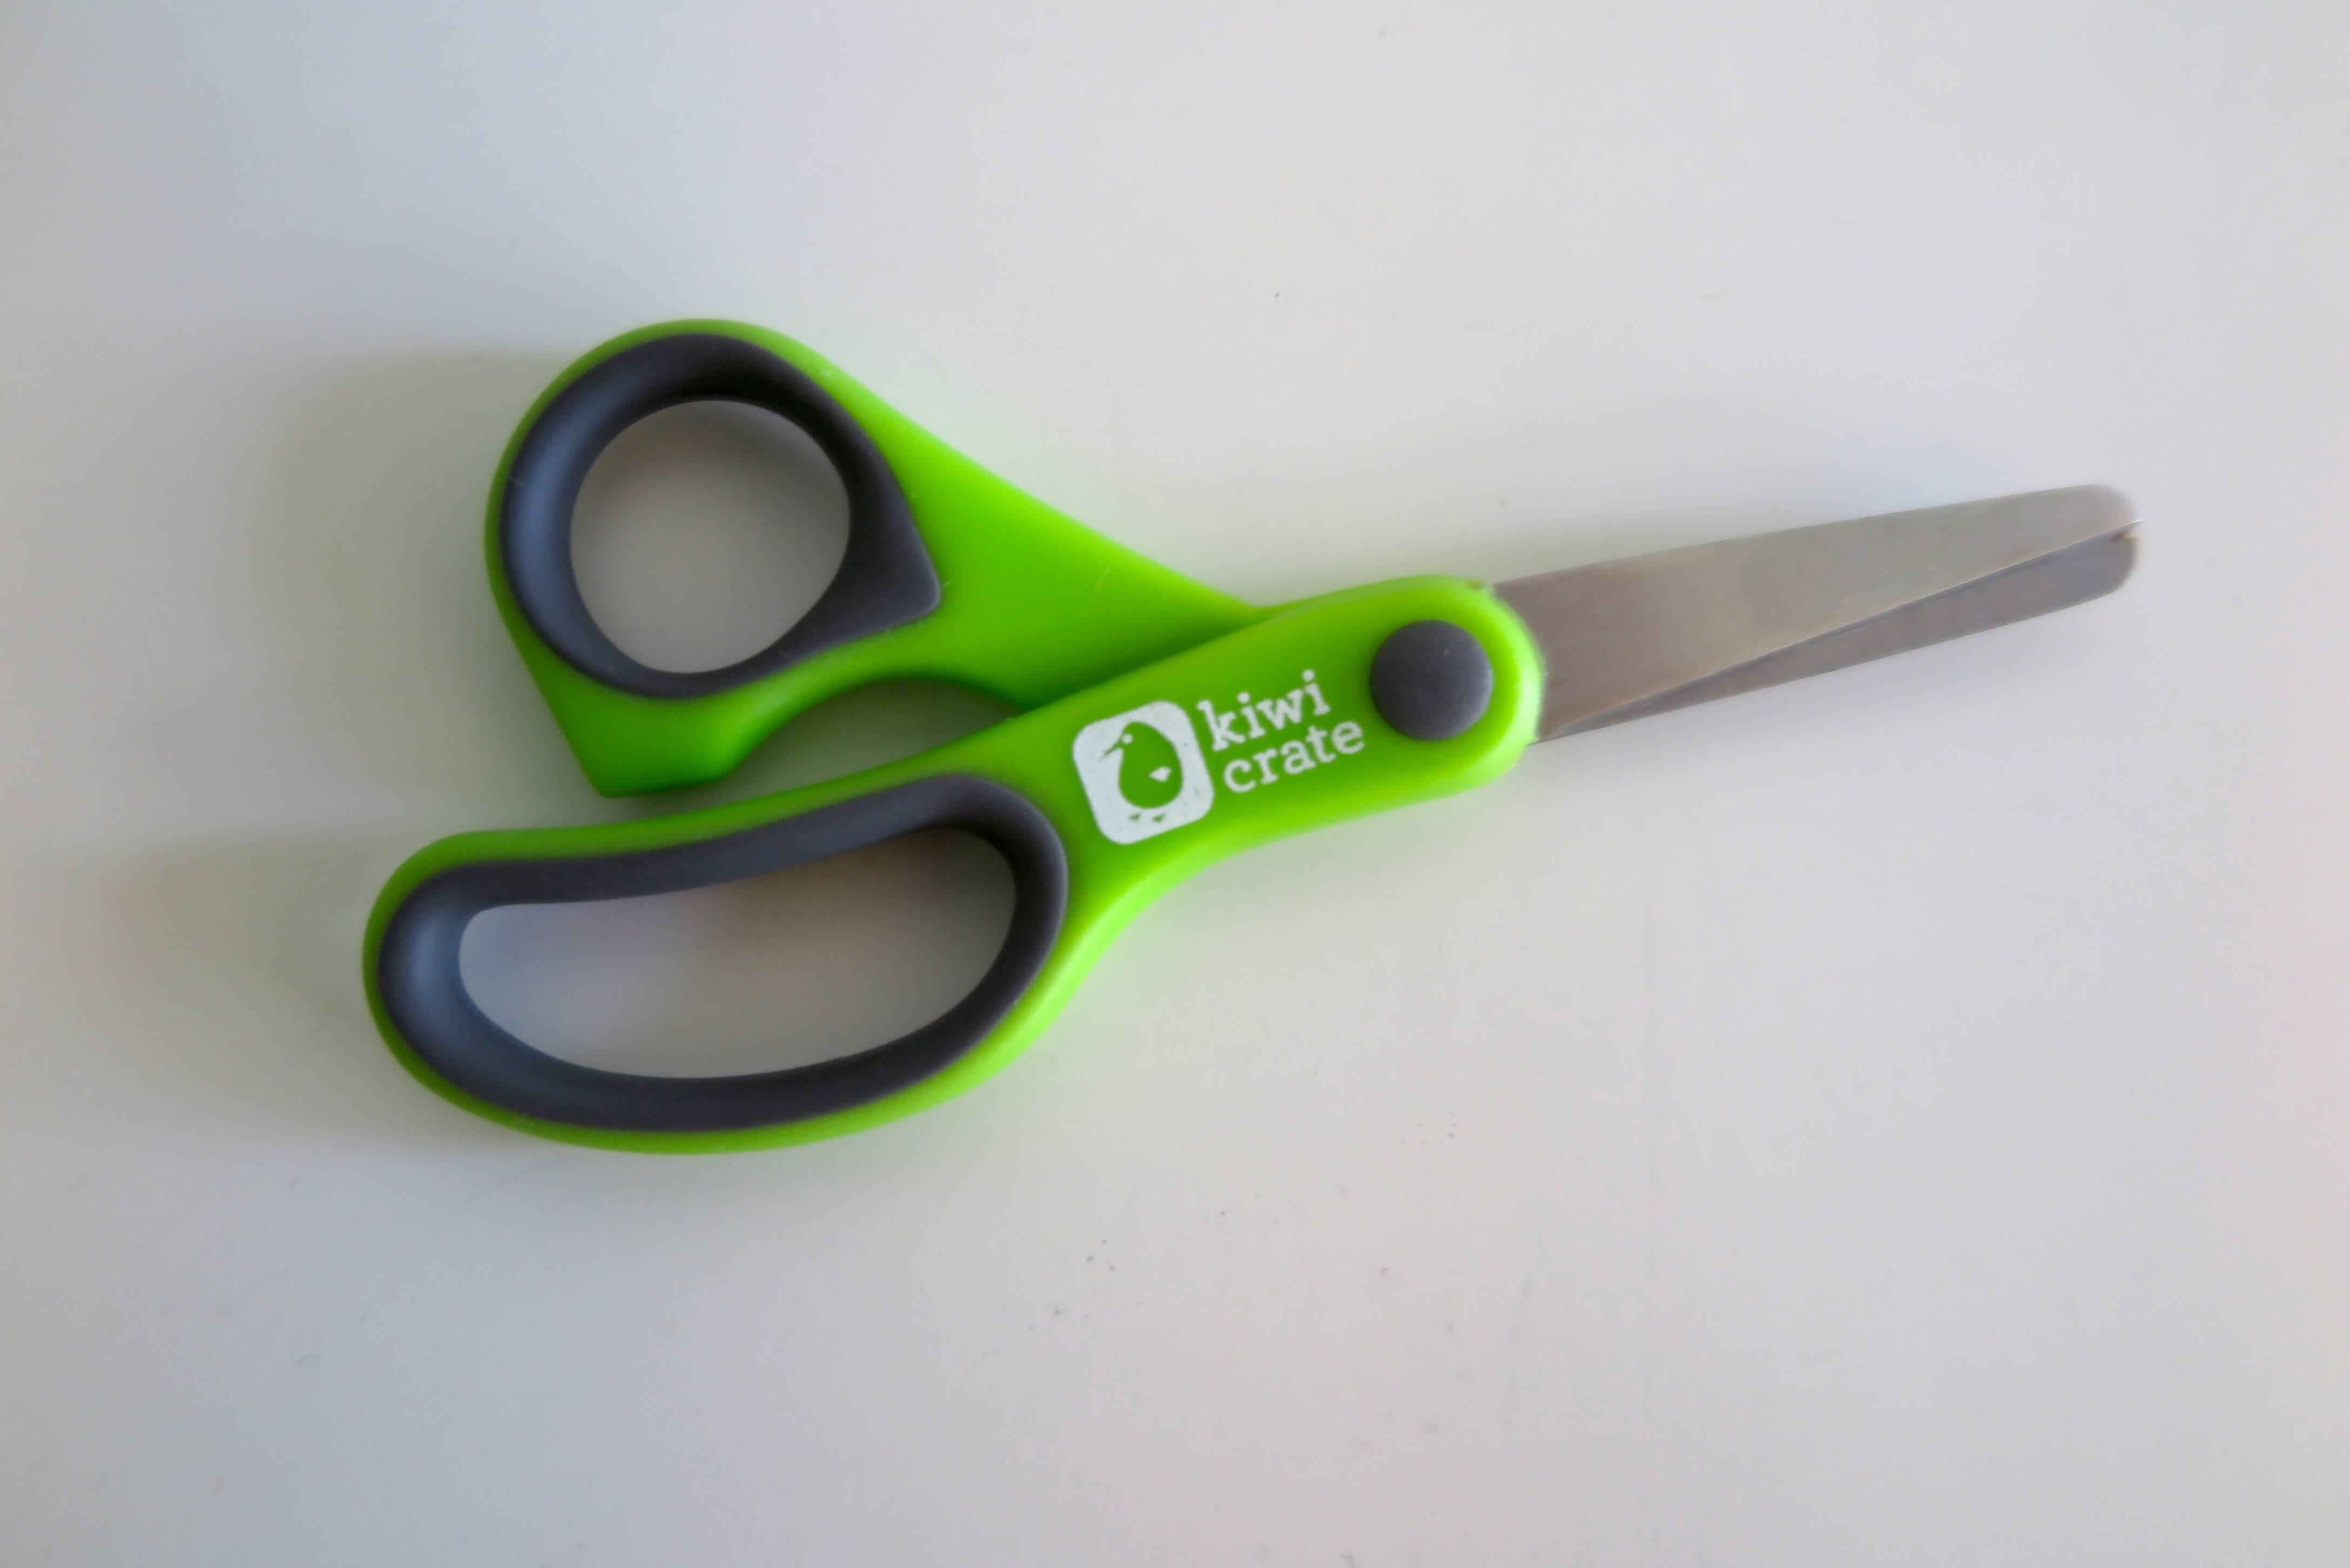 Kiwi-Crate-Scissors-DIY-Earth-Day-Recycle